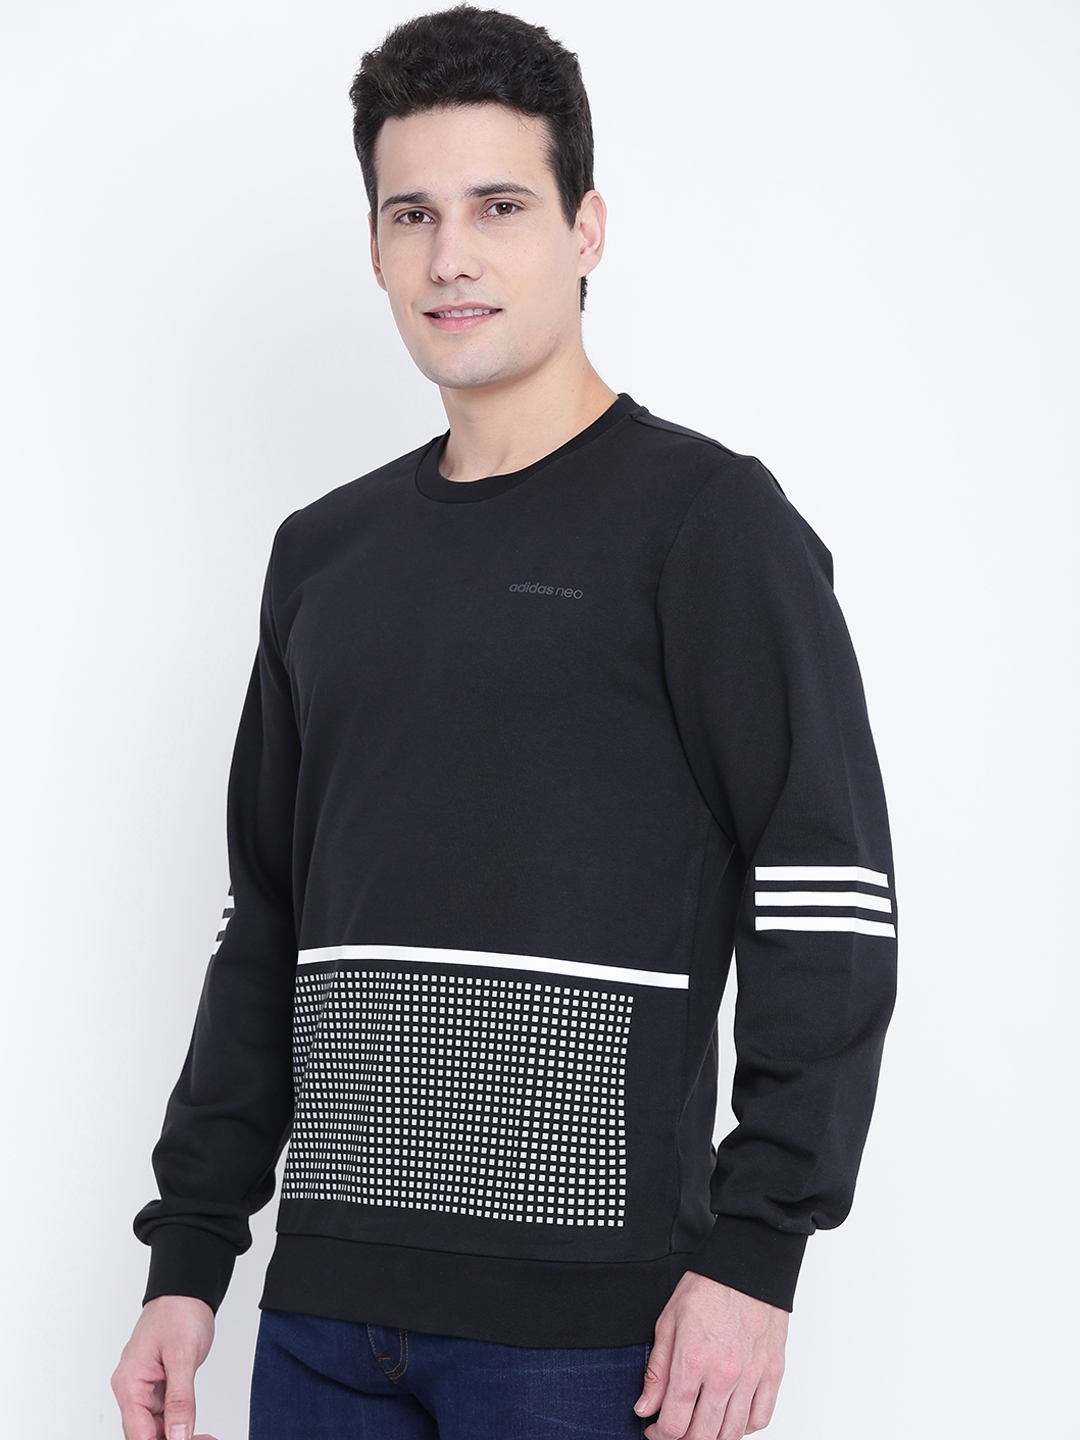 Buy ADIDAS NEO Men Black   White RFLCT GR Printed Sweatshirt ... b6c87ef42f